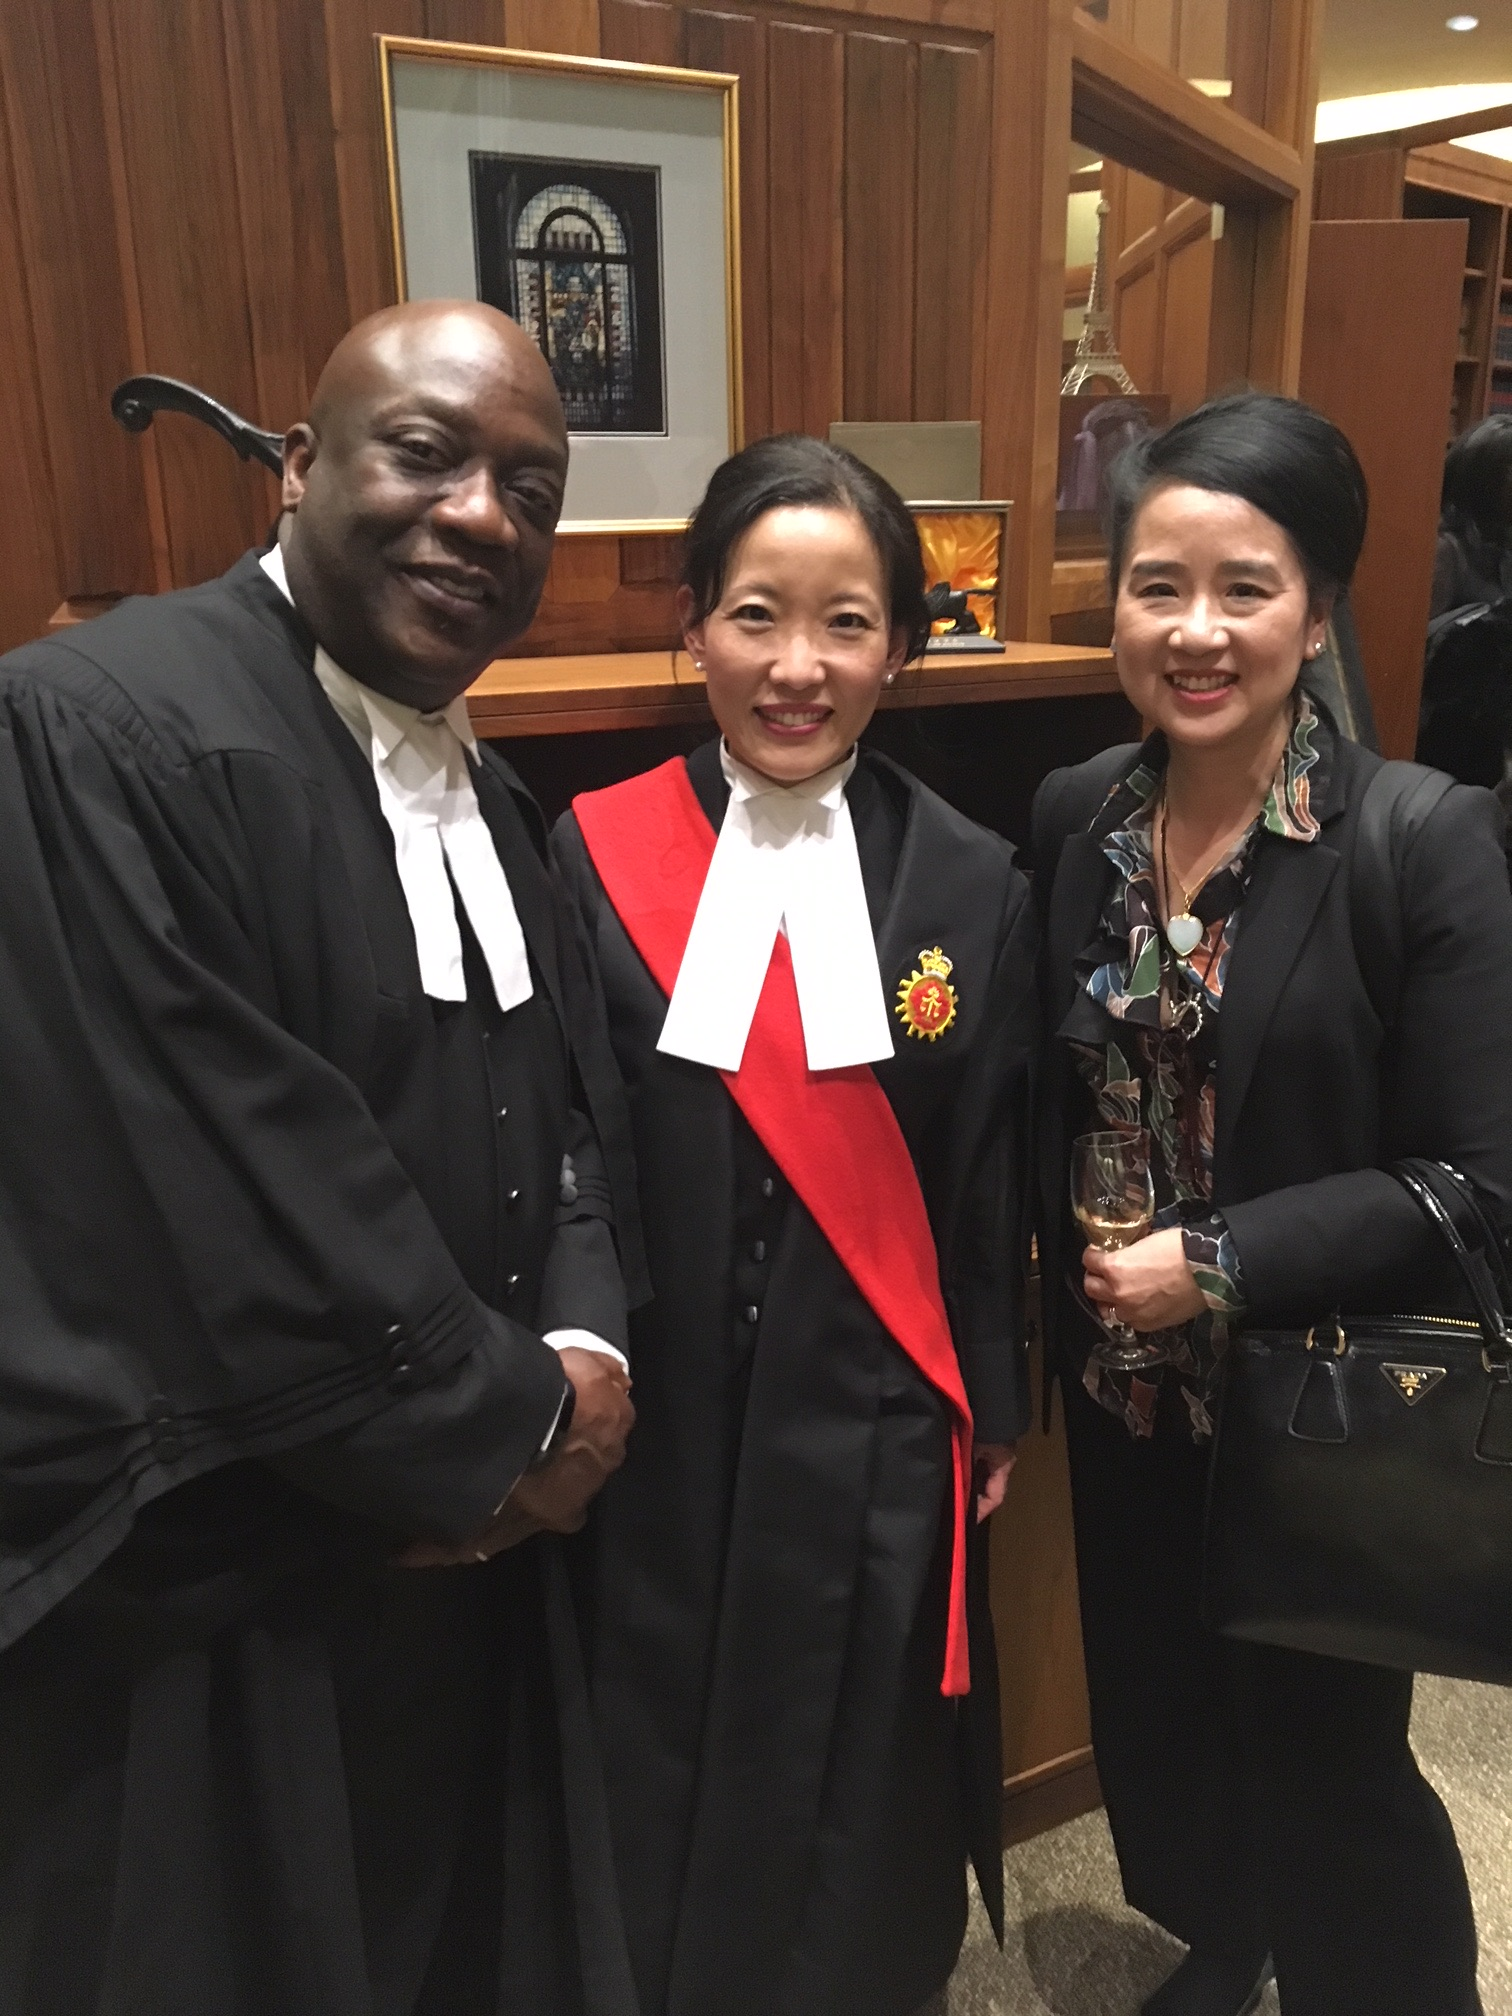 At swearing in of Justice Nishikawa and CABL representative Gordon Cudjoe